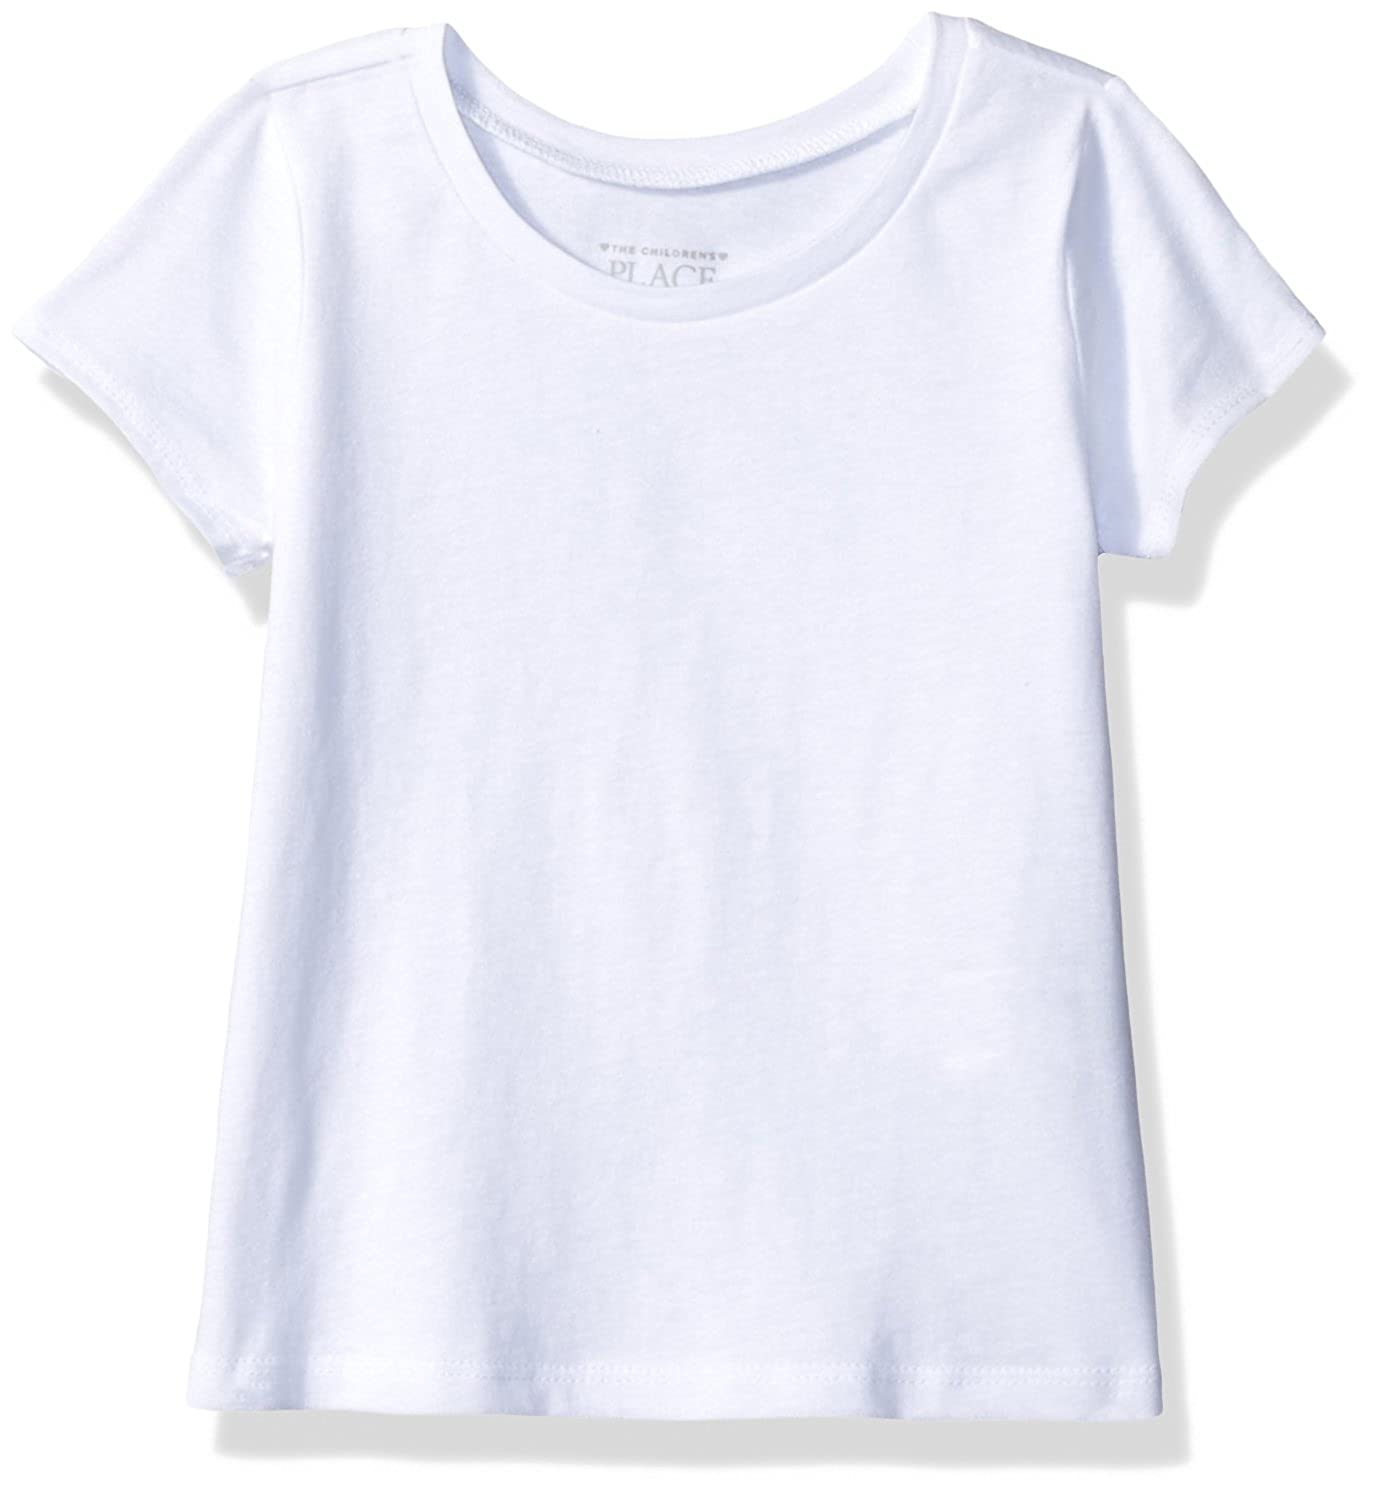 The Children's Place Girls' Basic Short Sleeve Layering Tee The Children' s Place